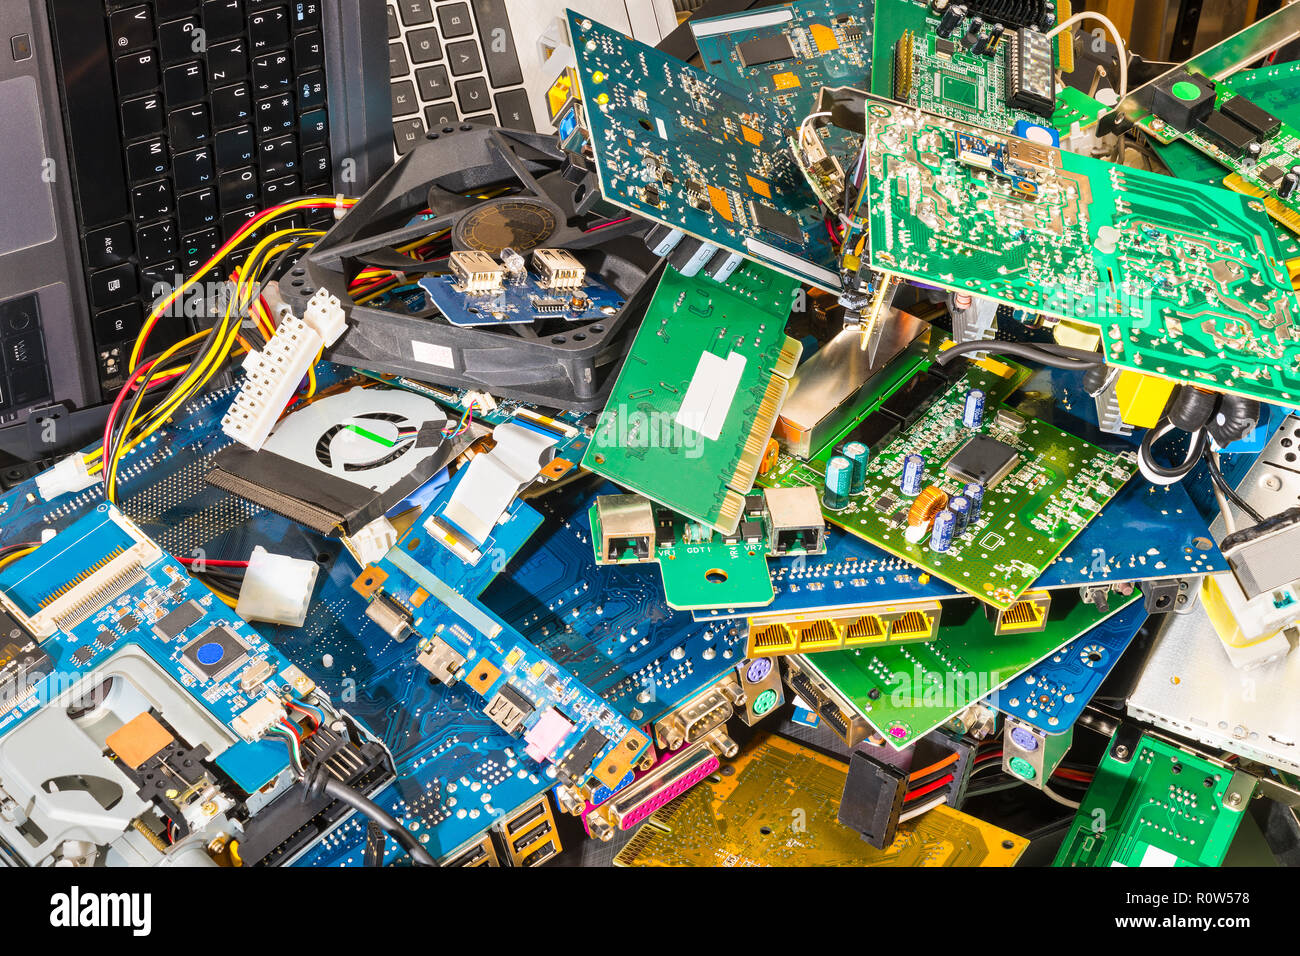 Electronic Waste Stock Photos Images Alamy Circuit Board Recycling Machine Pcb E Pile From Discarded Laptop Parts Connectors Notebook Keyboards